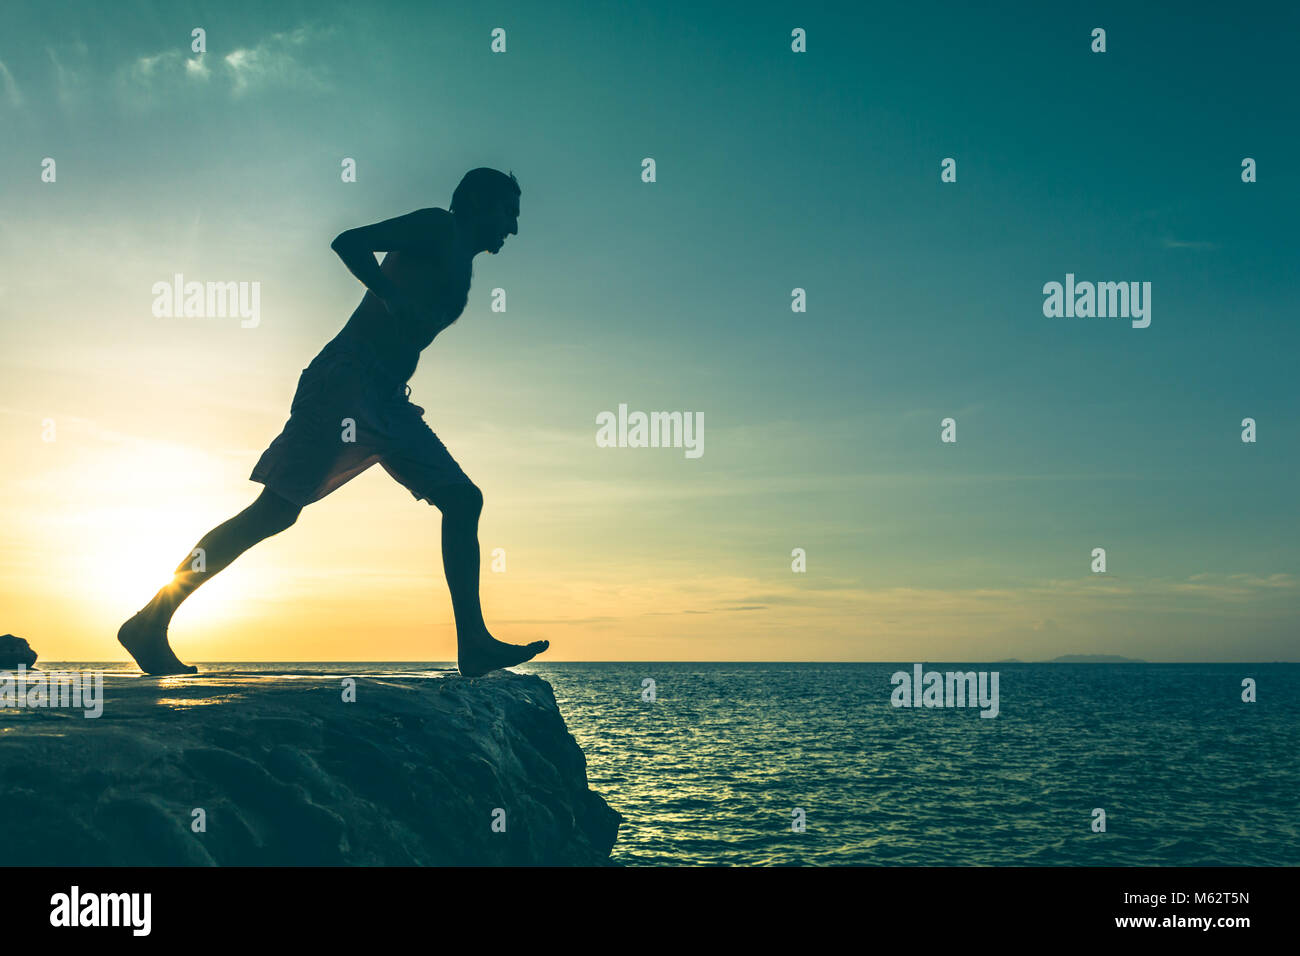 Man on the edge of a cliff about to jump into the sea on sunset in Koh Phangan island, Thailand. No fear concept. - Stock Image